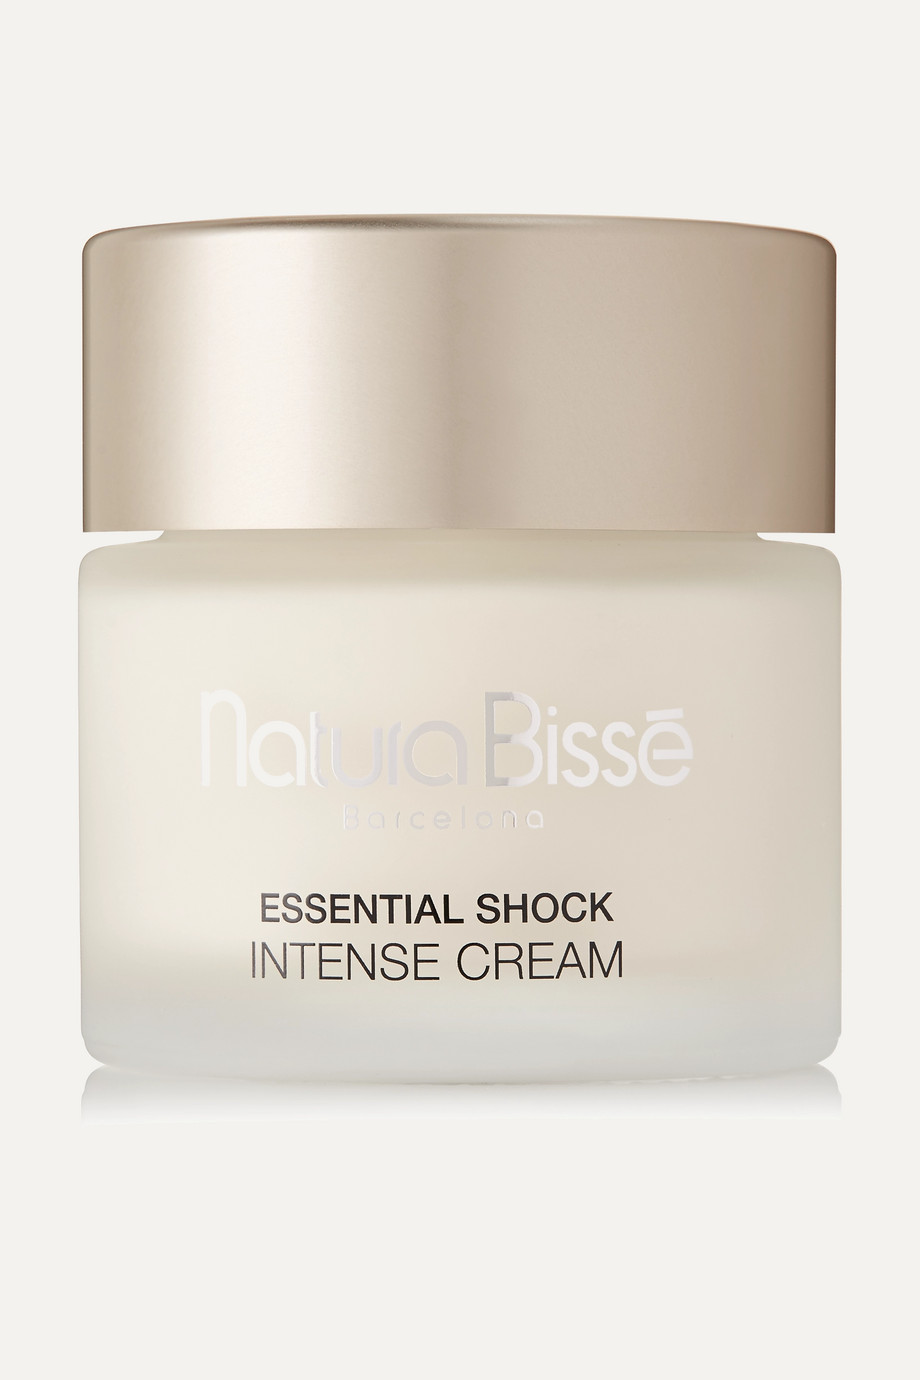 Natura Bissé Essential Shock Intense Cream, 75ml